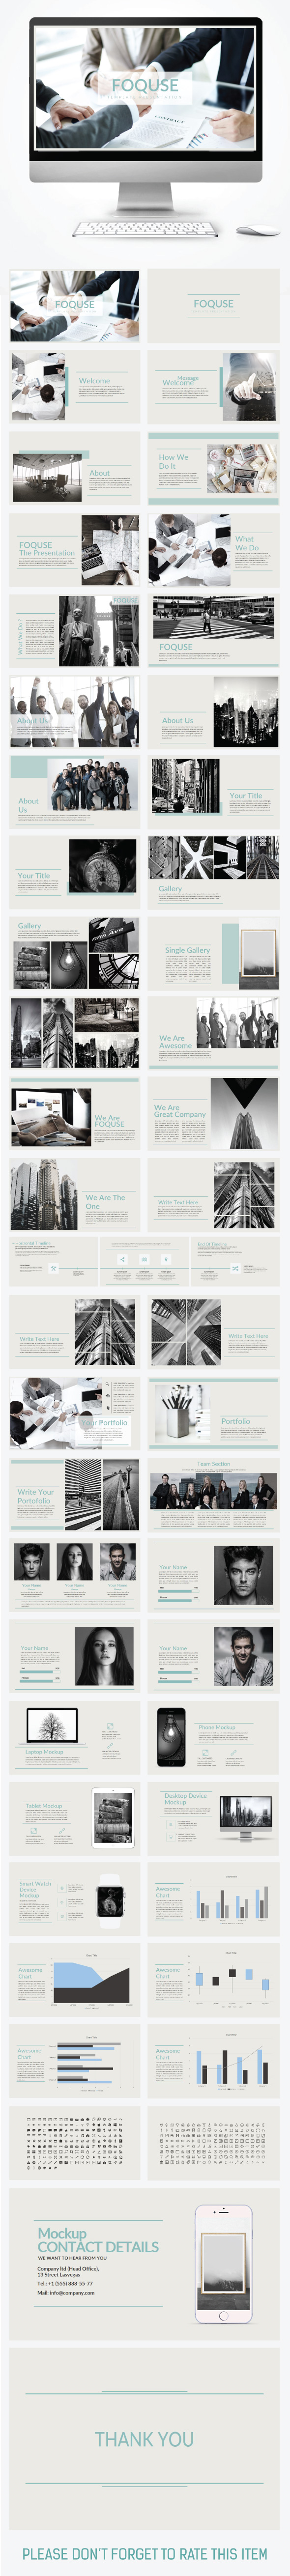 FOQUSE Template Presentation - Creative PowerPoint Templates